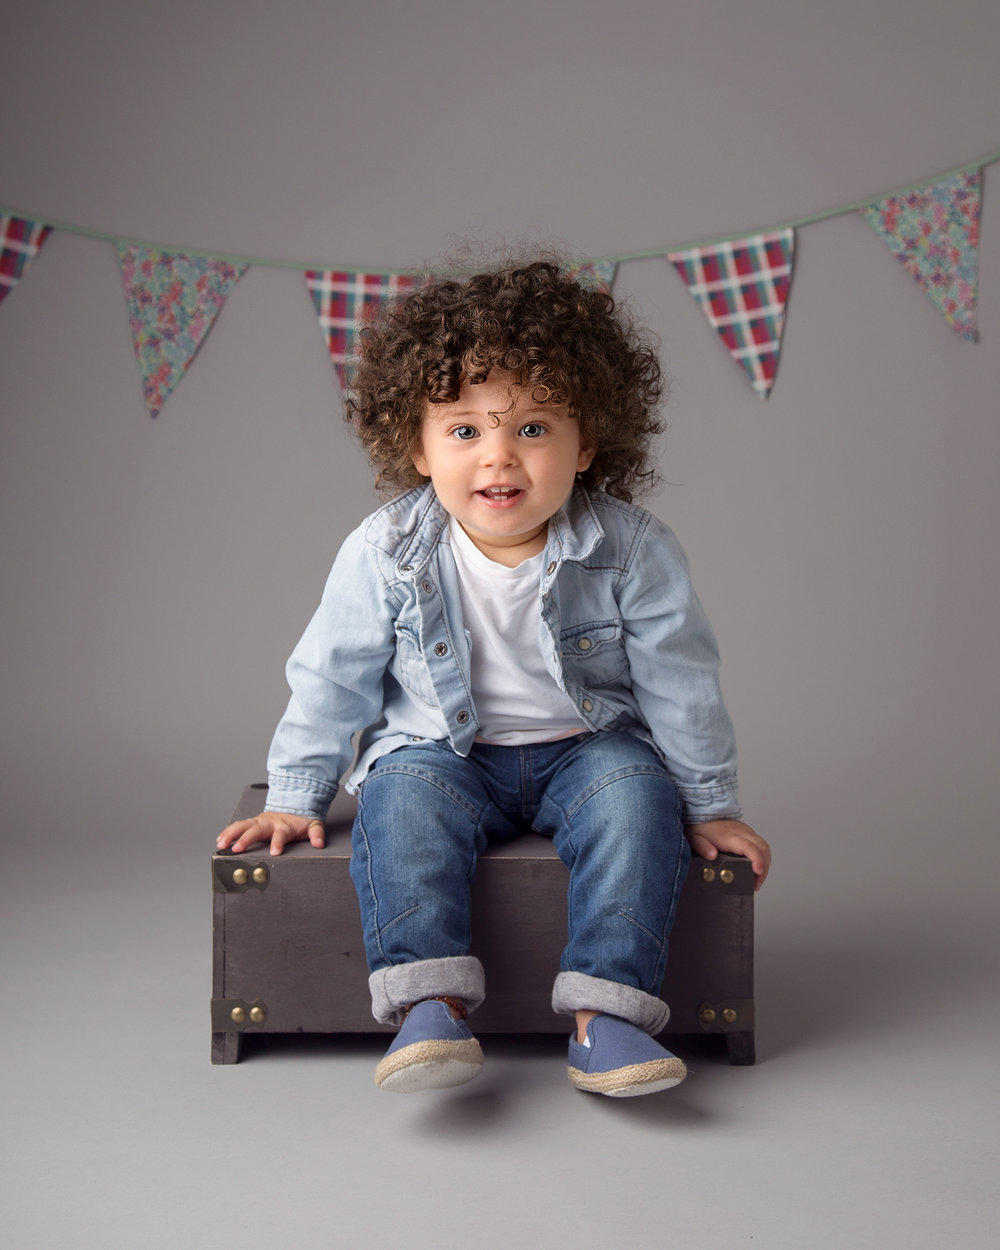 Children's and baby photographer in Gloucestershire.jpg